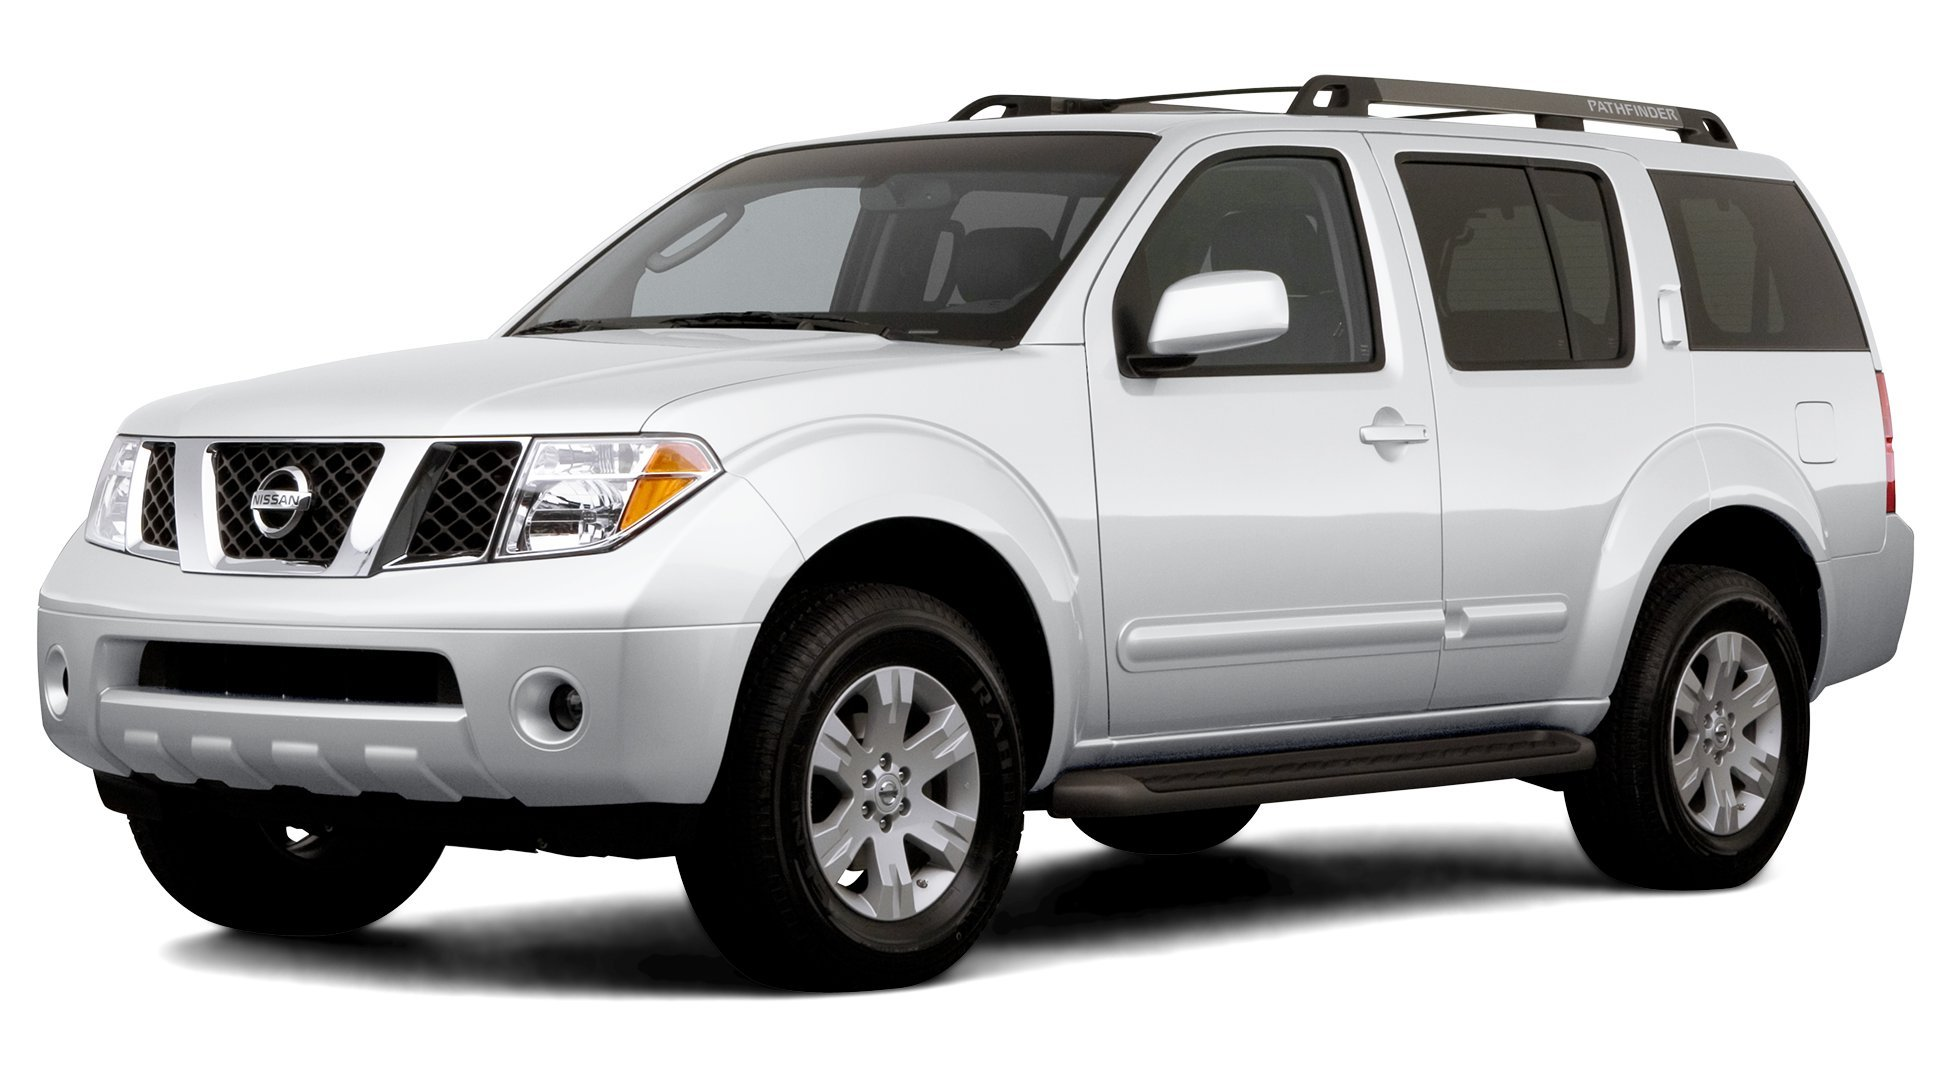 2007 nissan pathfinder reviews images and. Black Bedroom Furniture Sets. Home Design Ideas